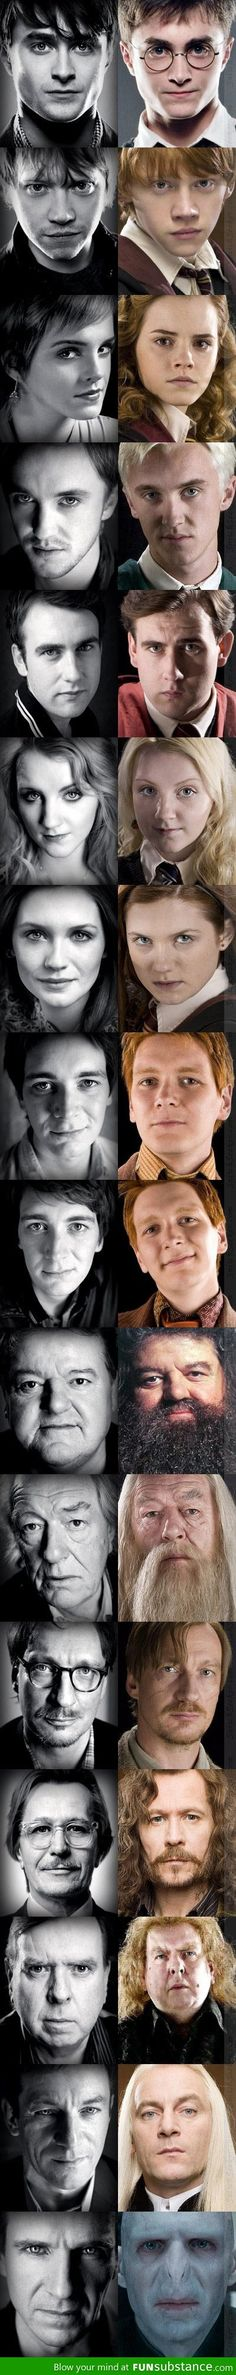 The real faces behind Harry Potter characters